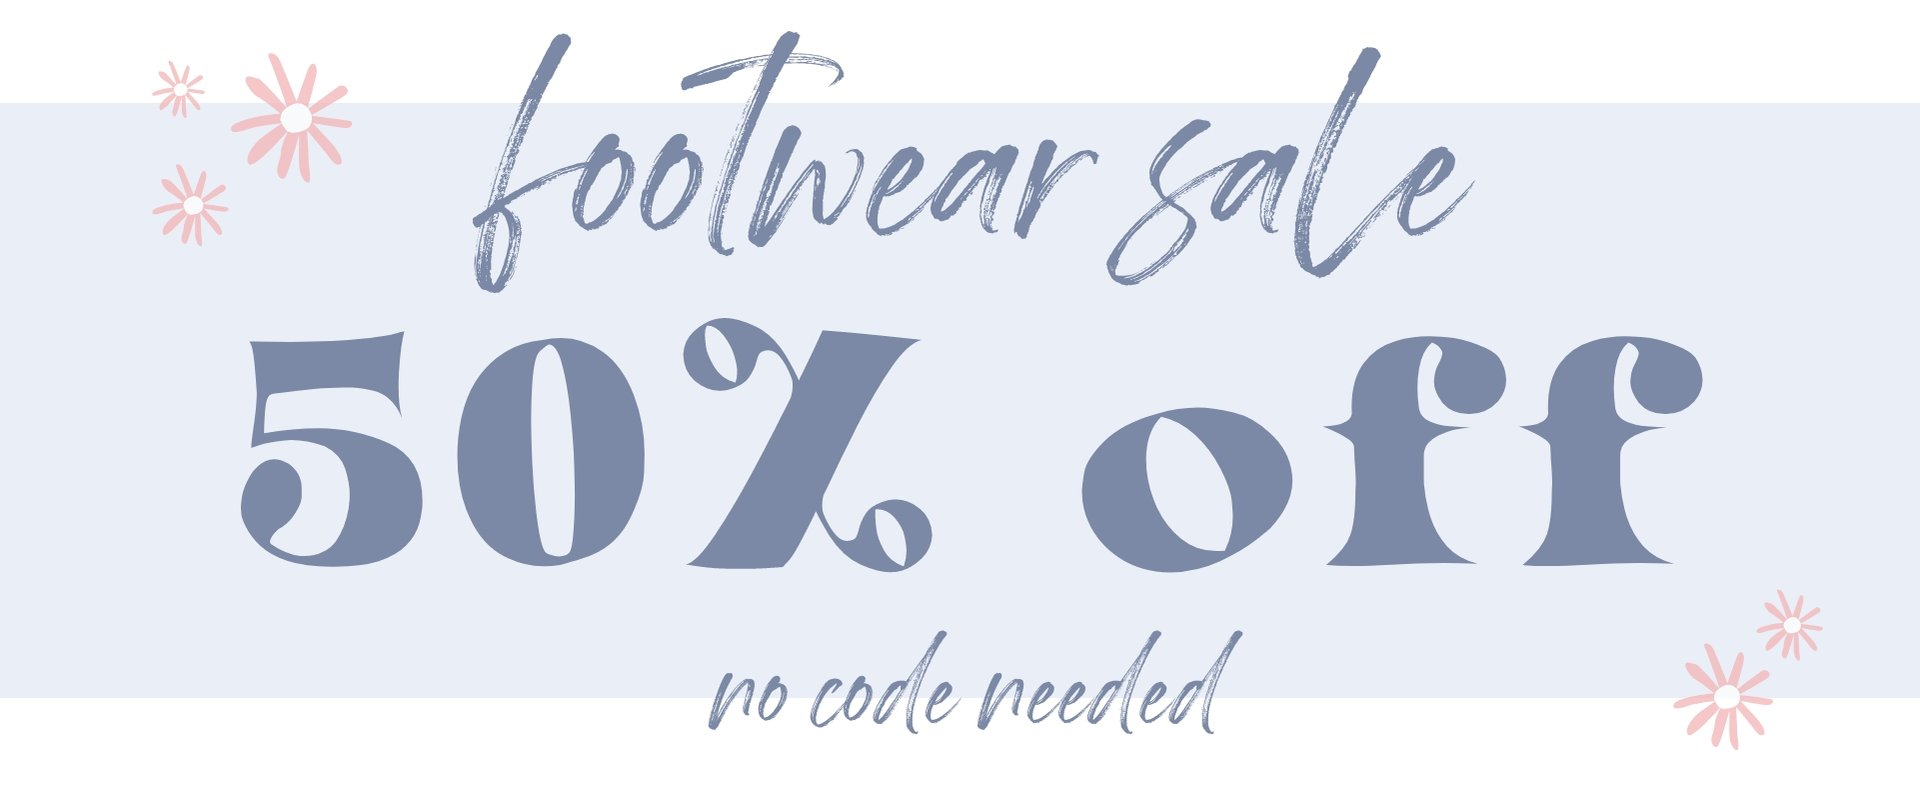 TFL Boutique - Warehouse Sale